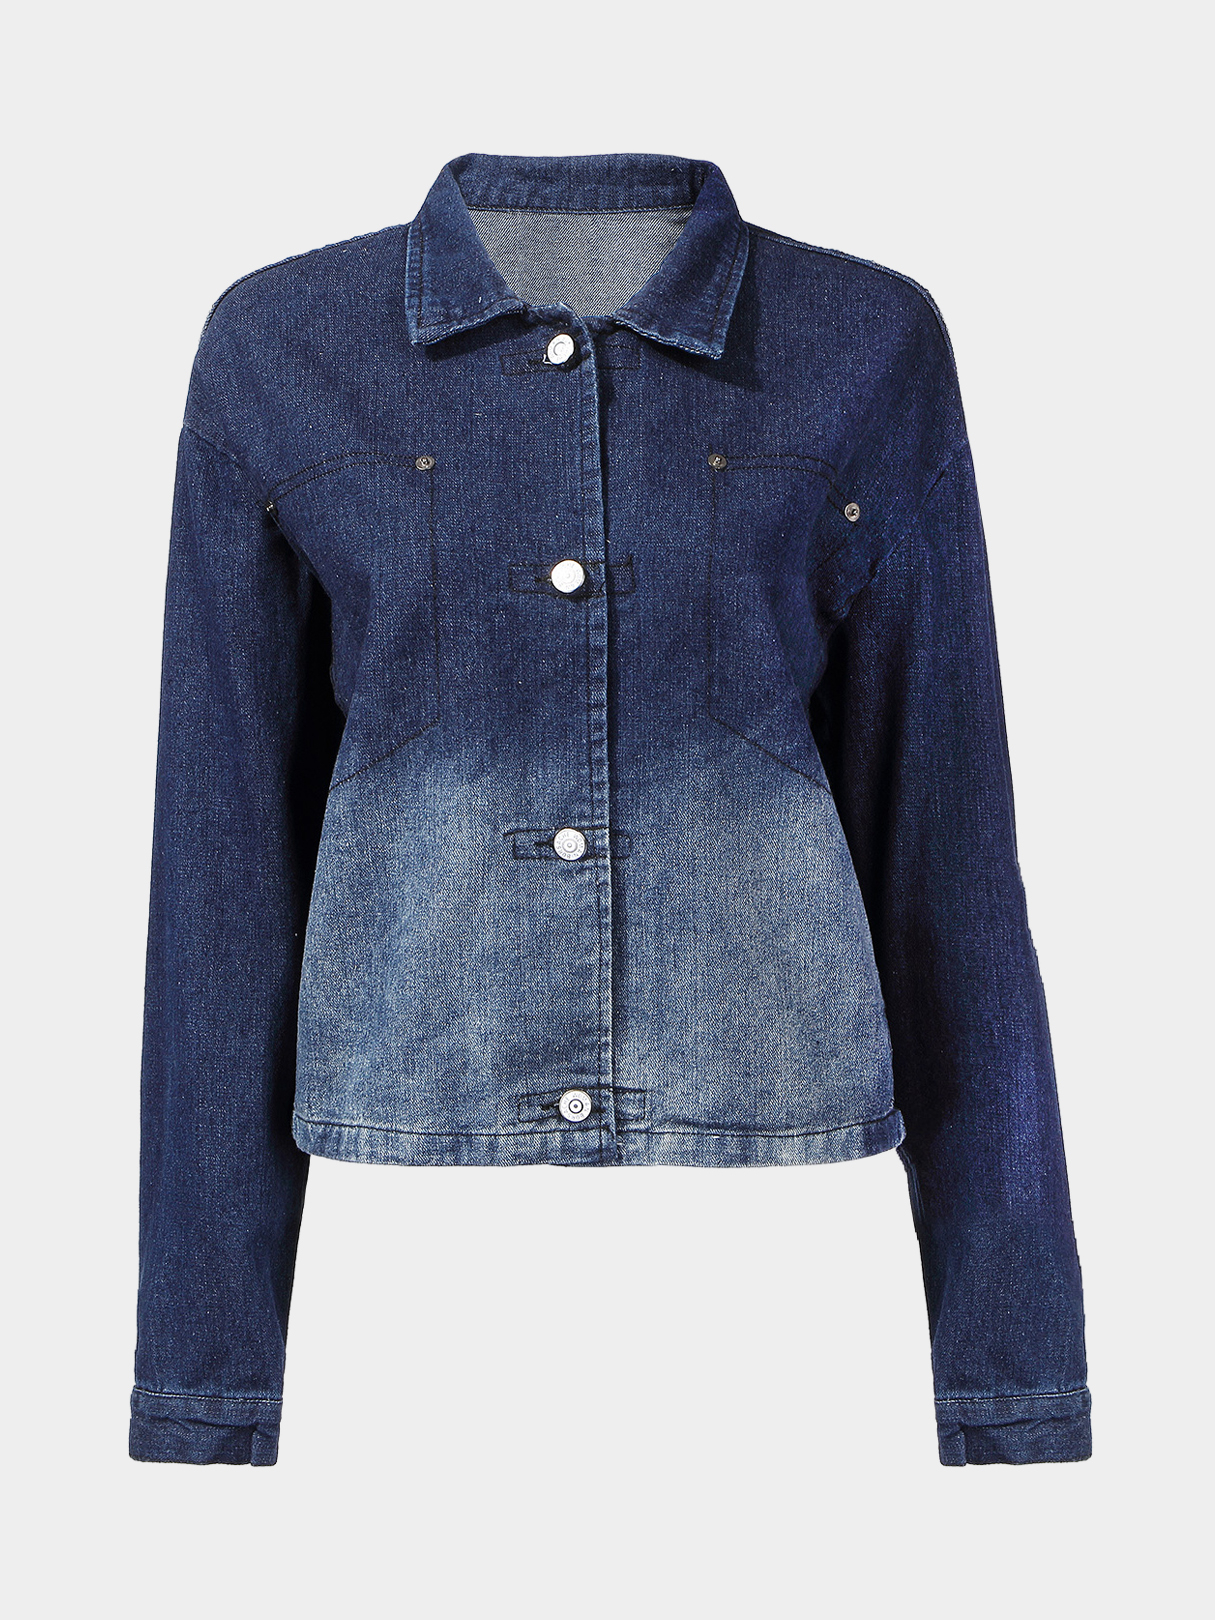 Denim Jacket with Ombre Effect